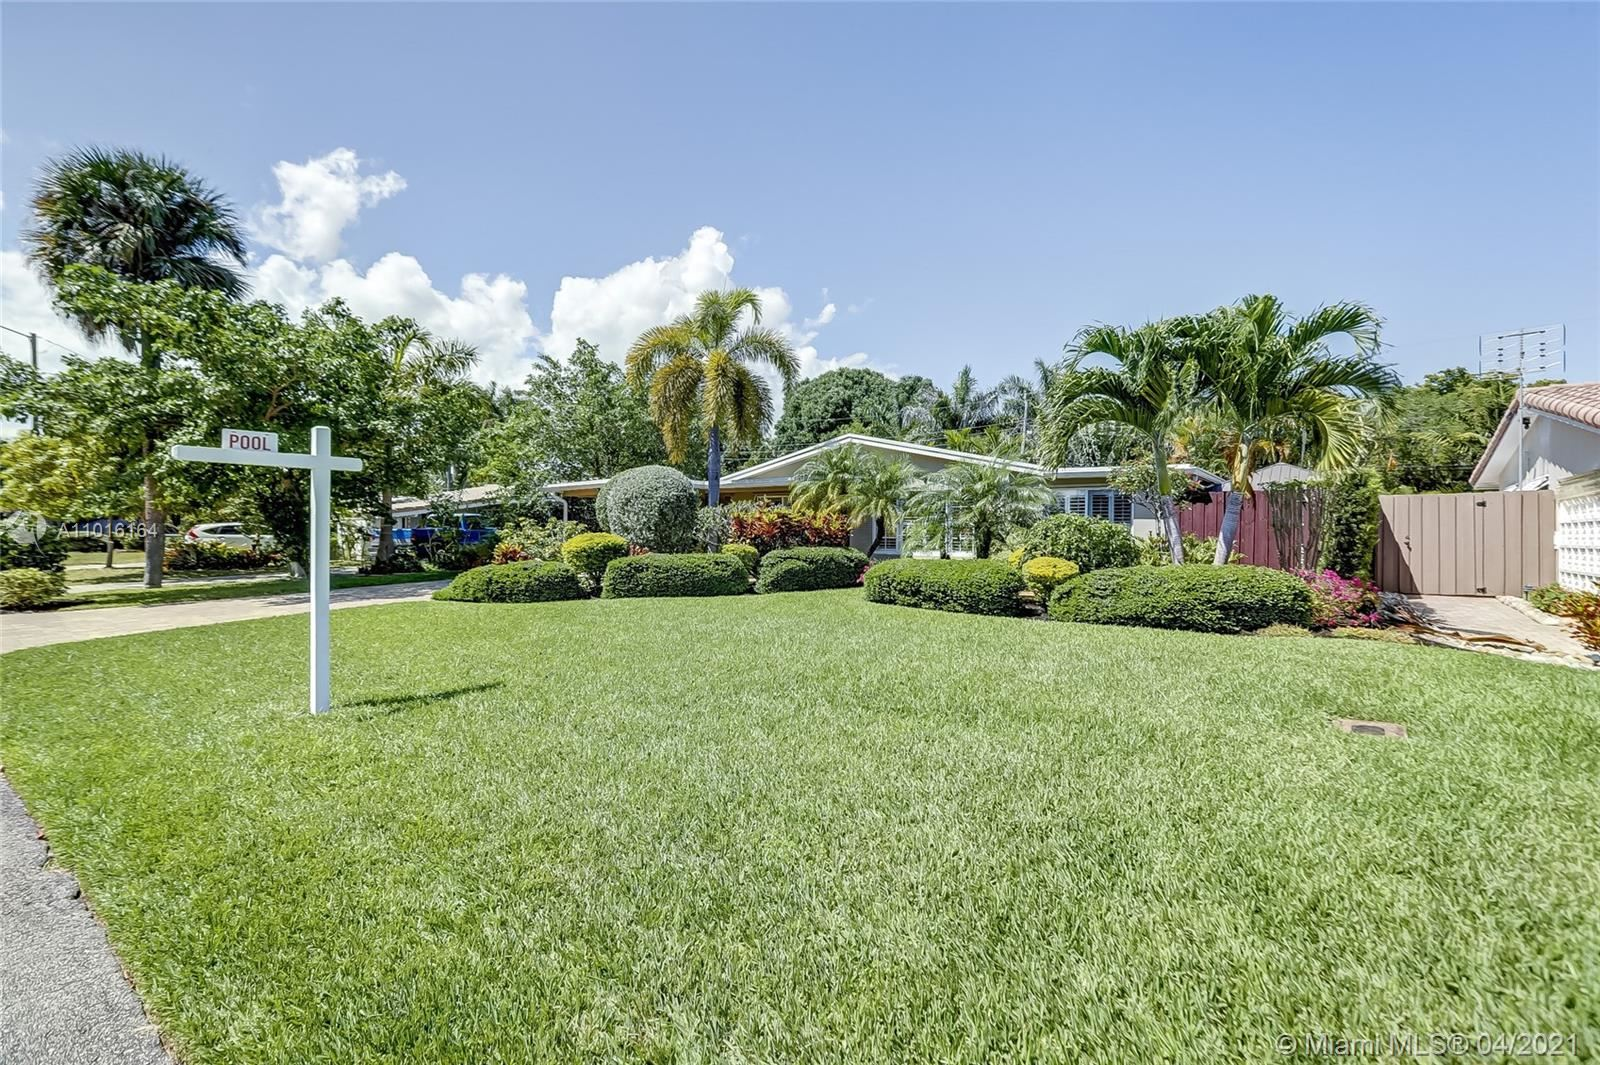 417 NW 21st St, Wilton Manors, FL 33311 - #: A11016164